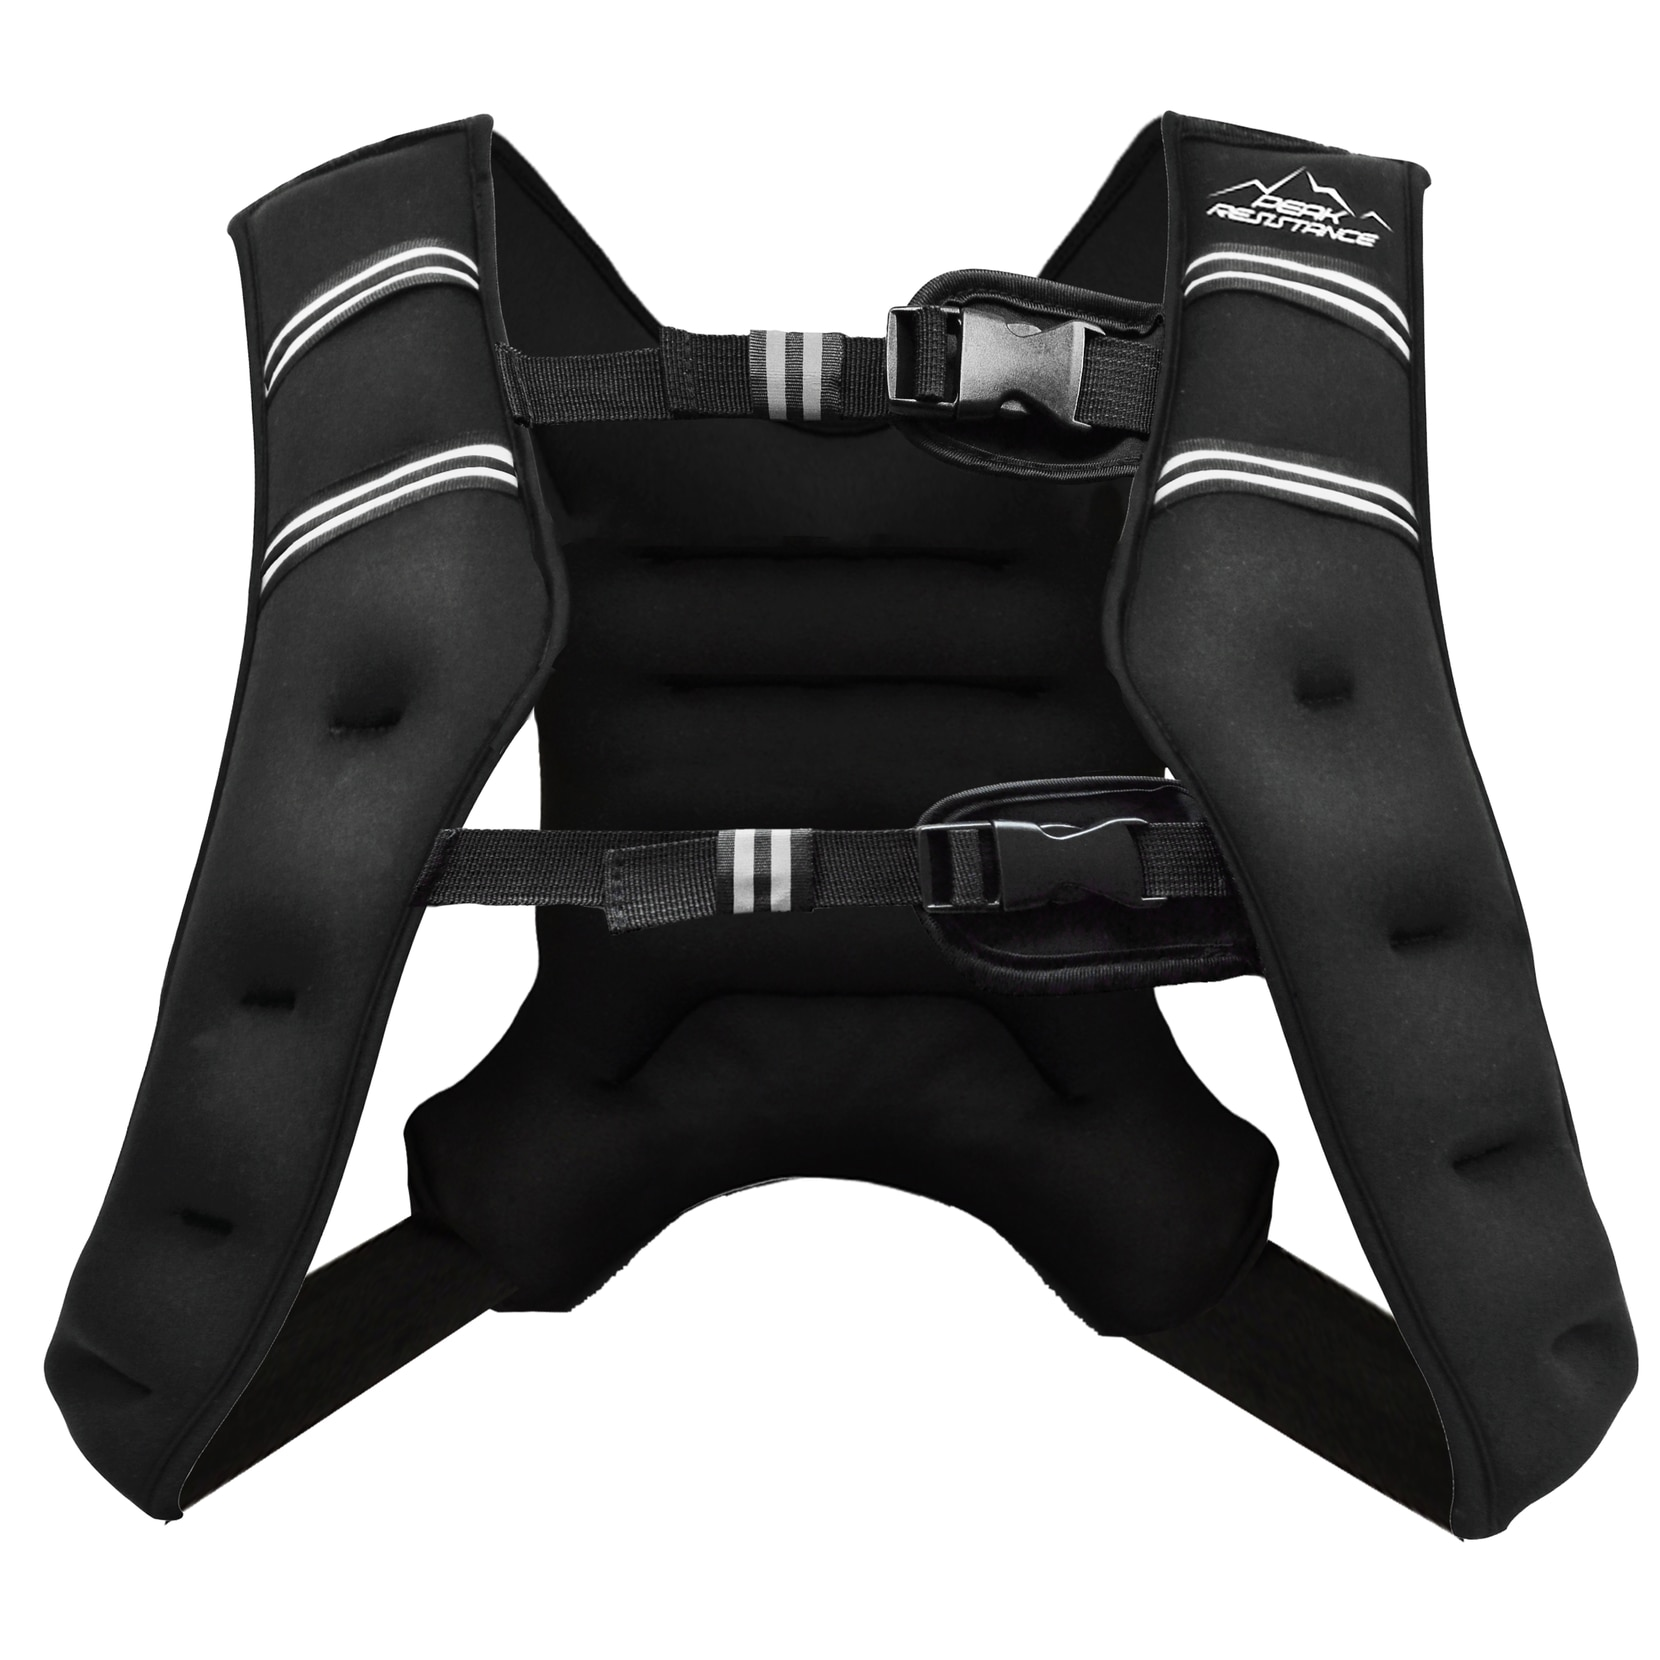 This Aduro Sport Weighted Vest can help intensif a workout. It comes in three weights.